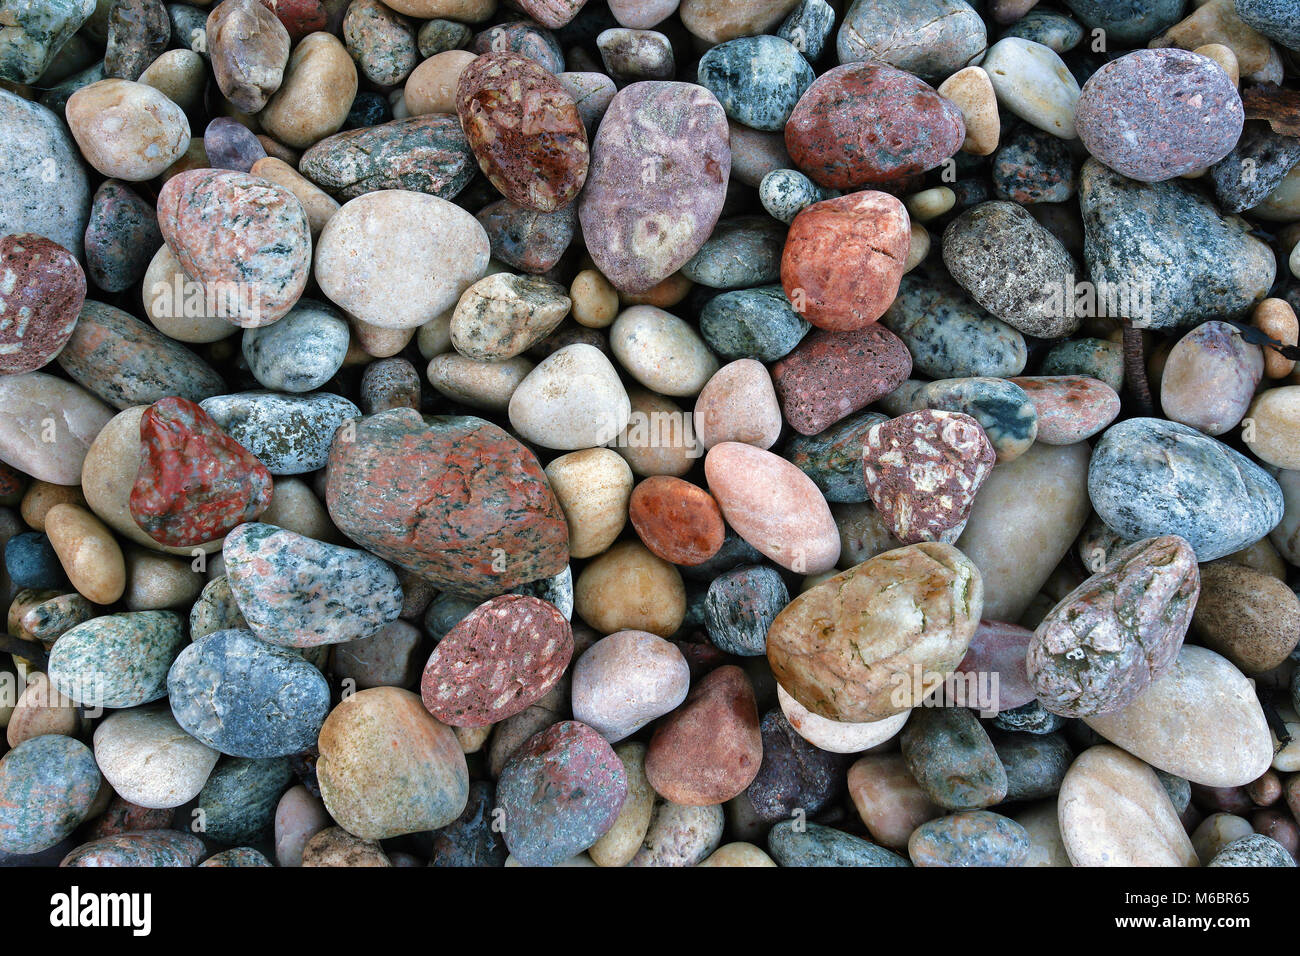 A close up view of colorful pebbles on Lochinver Beach along the west coast of Scotland. - Stock Image